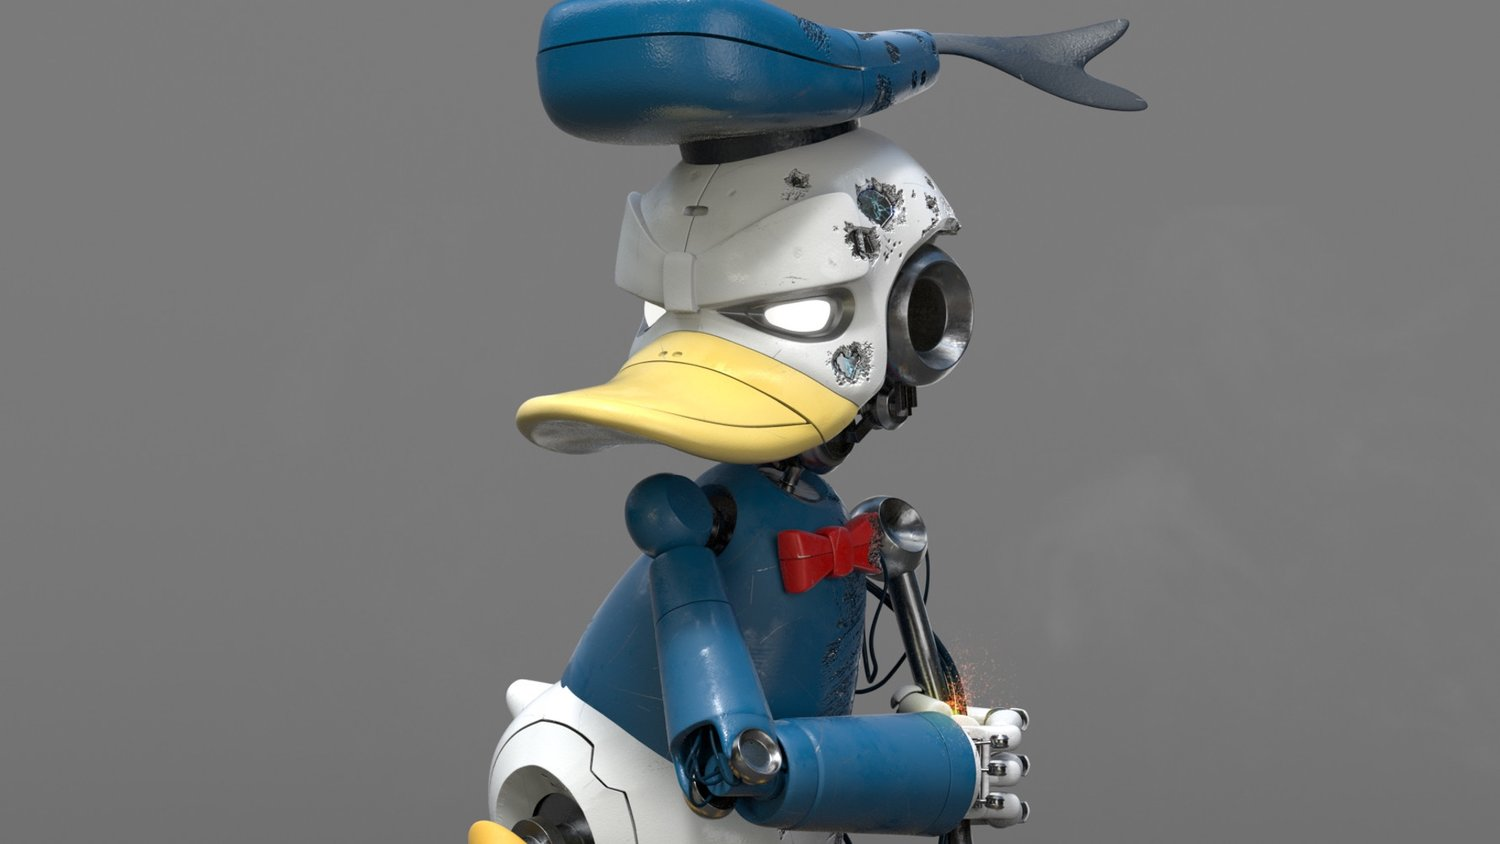 Donald Duck Reimagined as a Sinister-Looking Cyborg